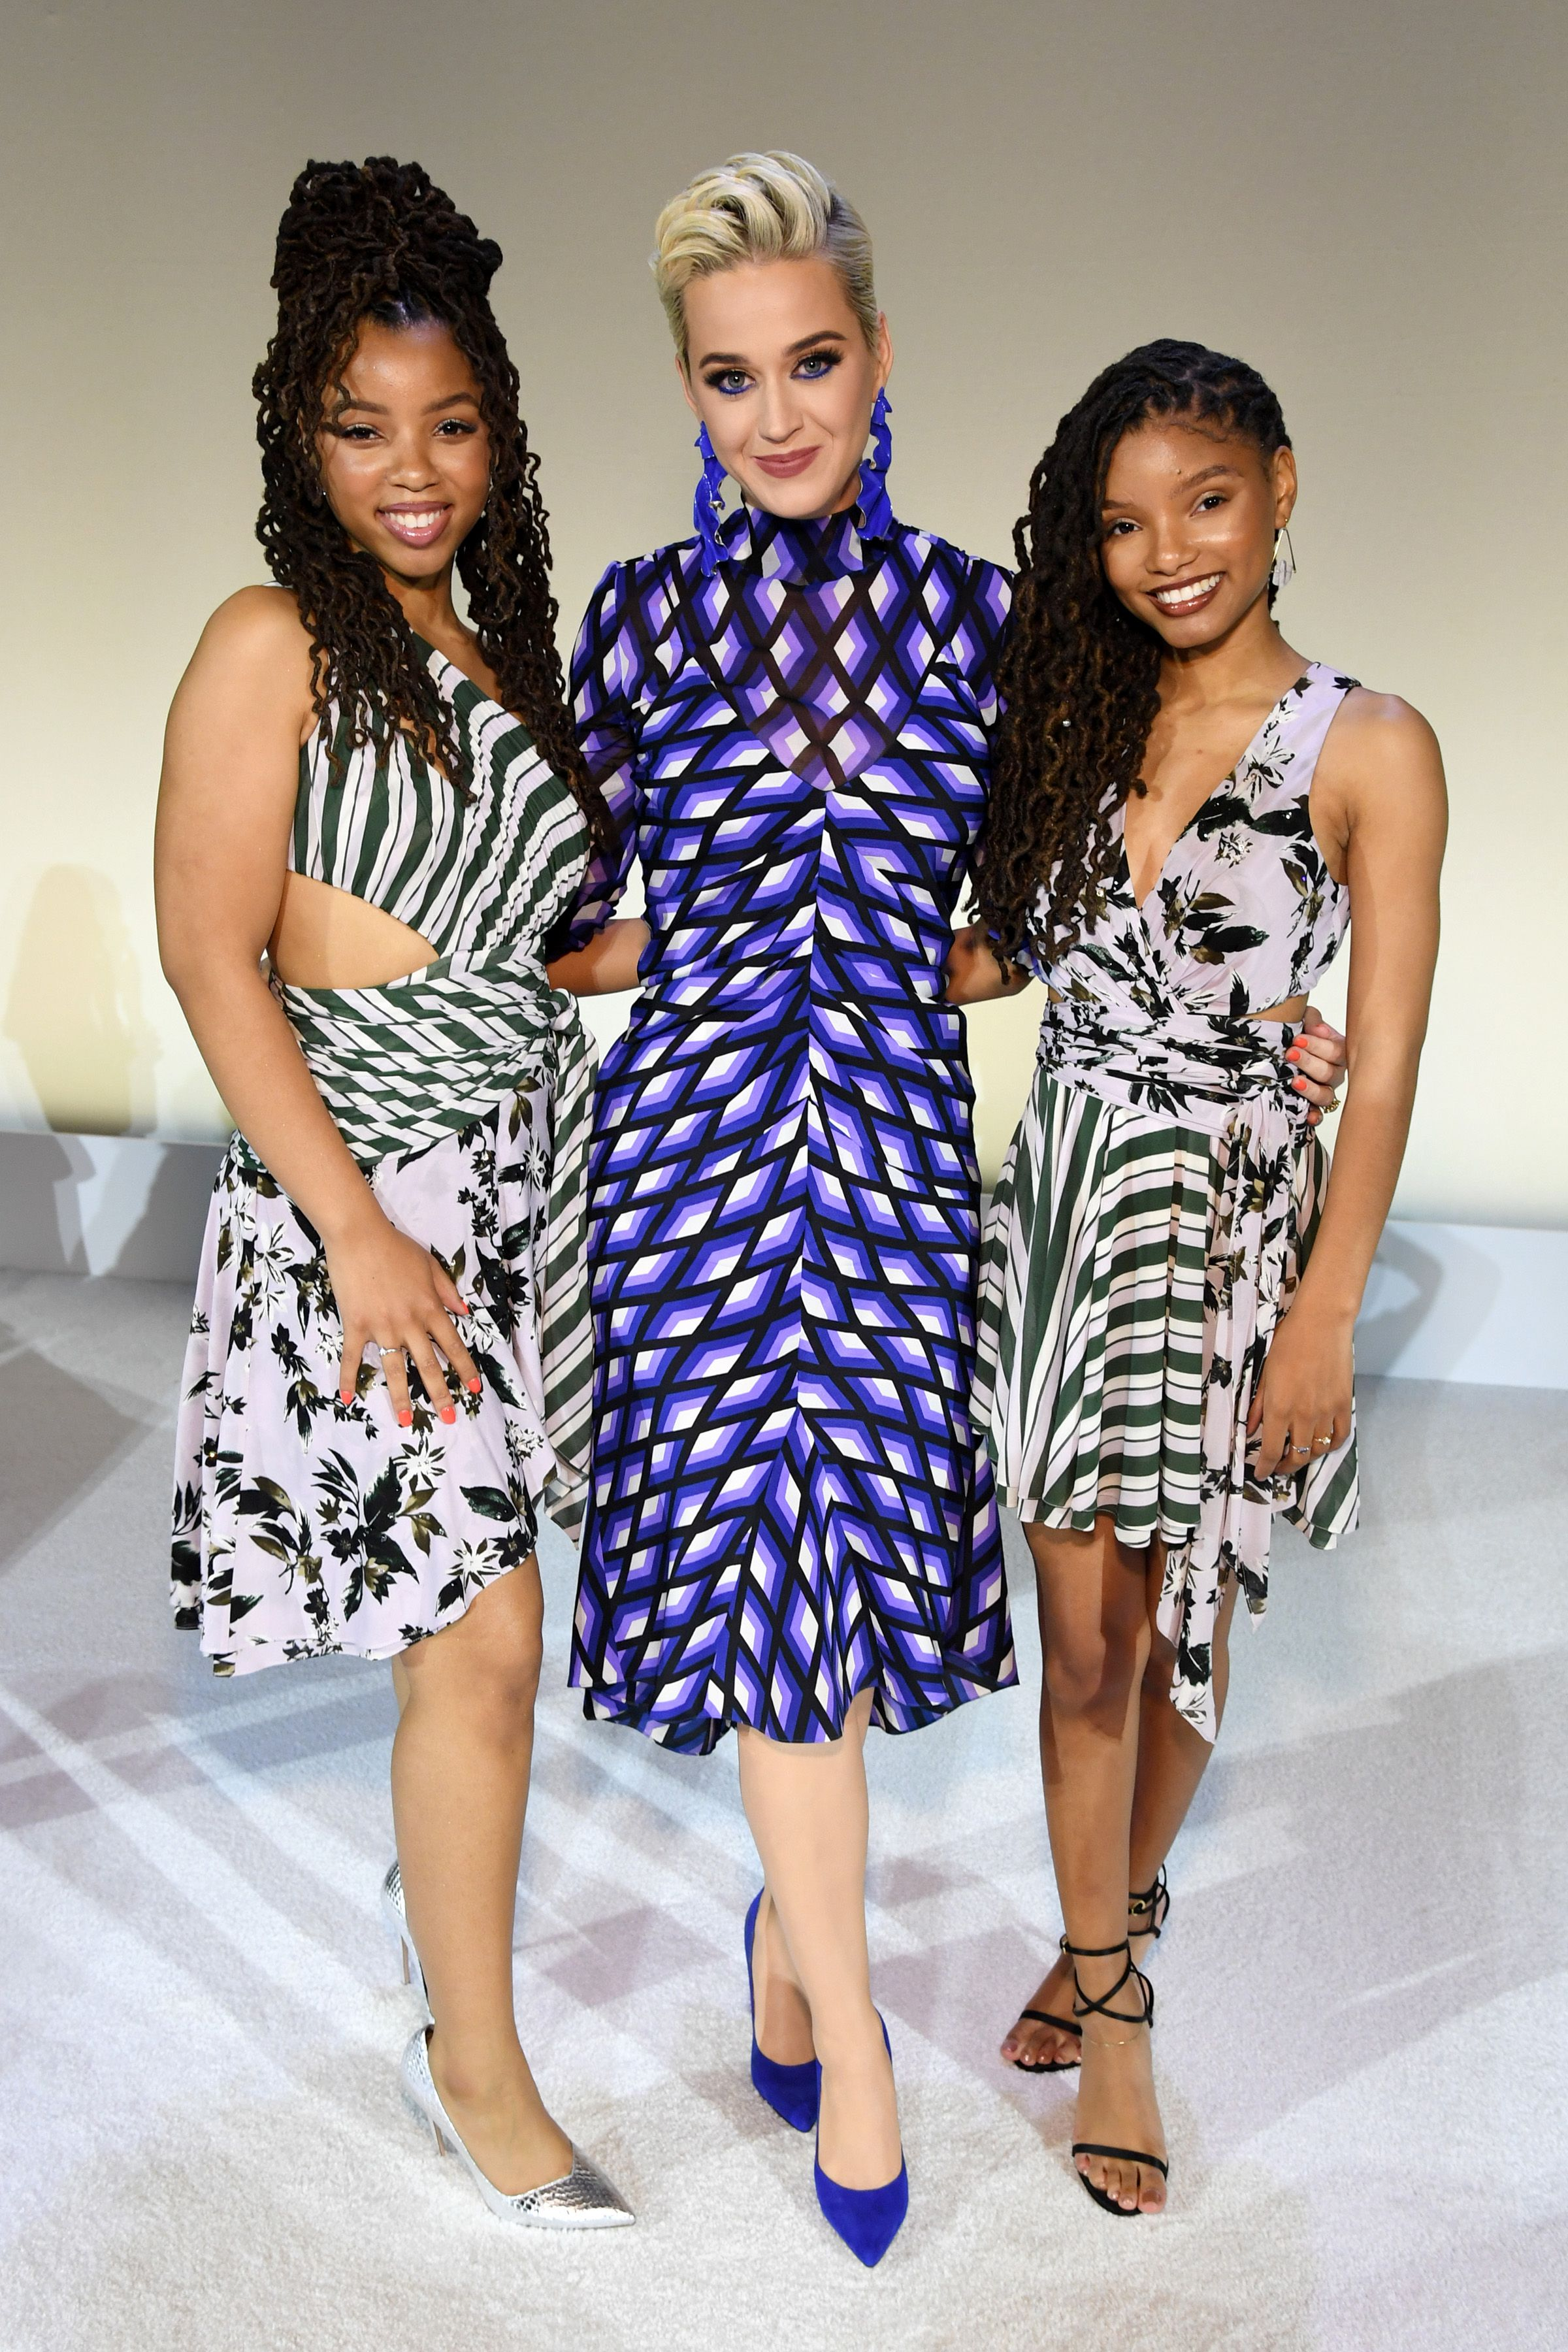 """Chloe x Halle and Katy Perry Before sister-duo Chloe x Halle's performance of """"Cool People,"""" """"Down,"""" and """"Where is the Love?"""""""